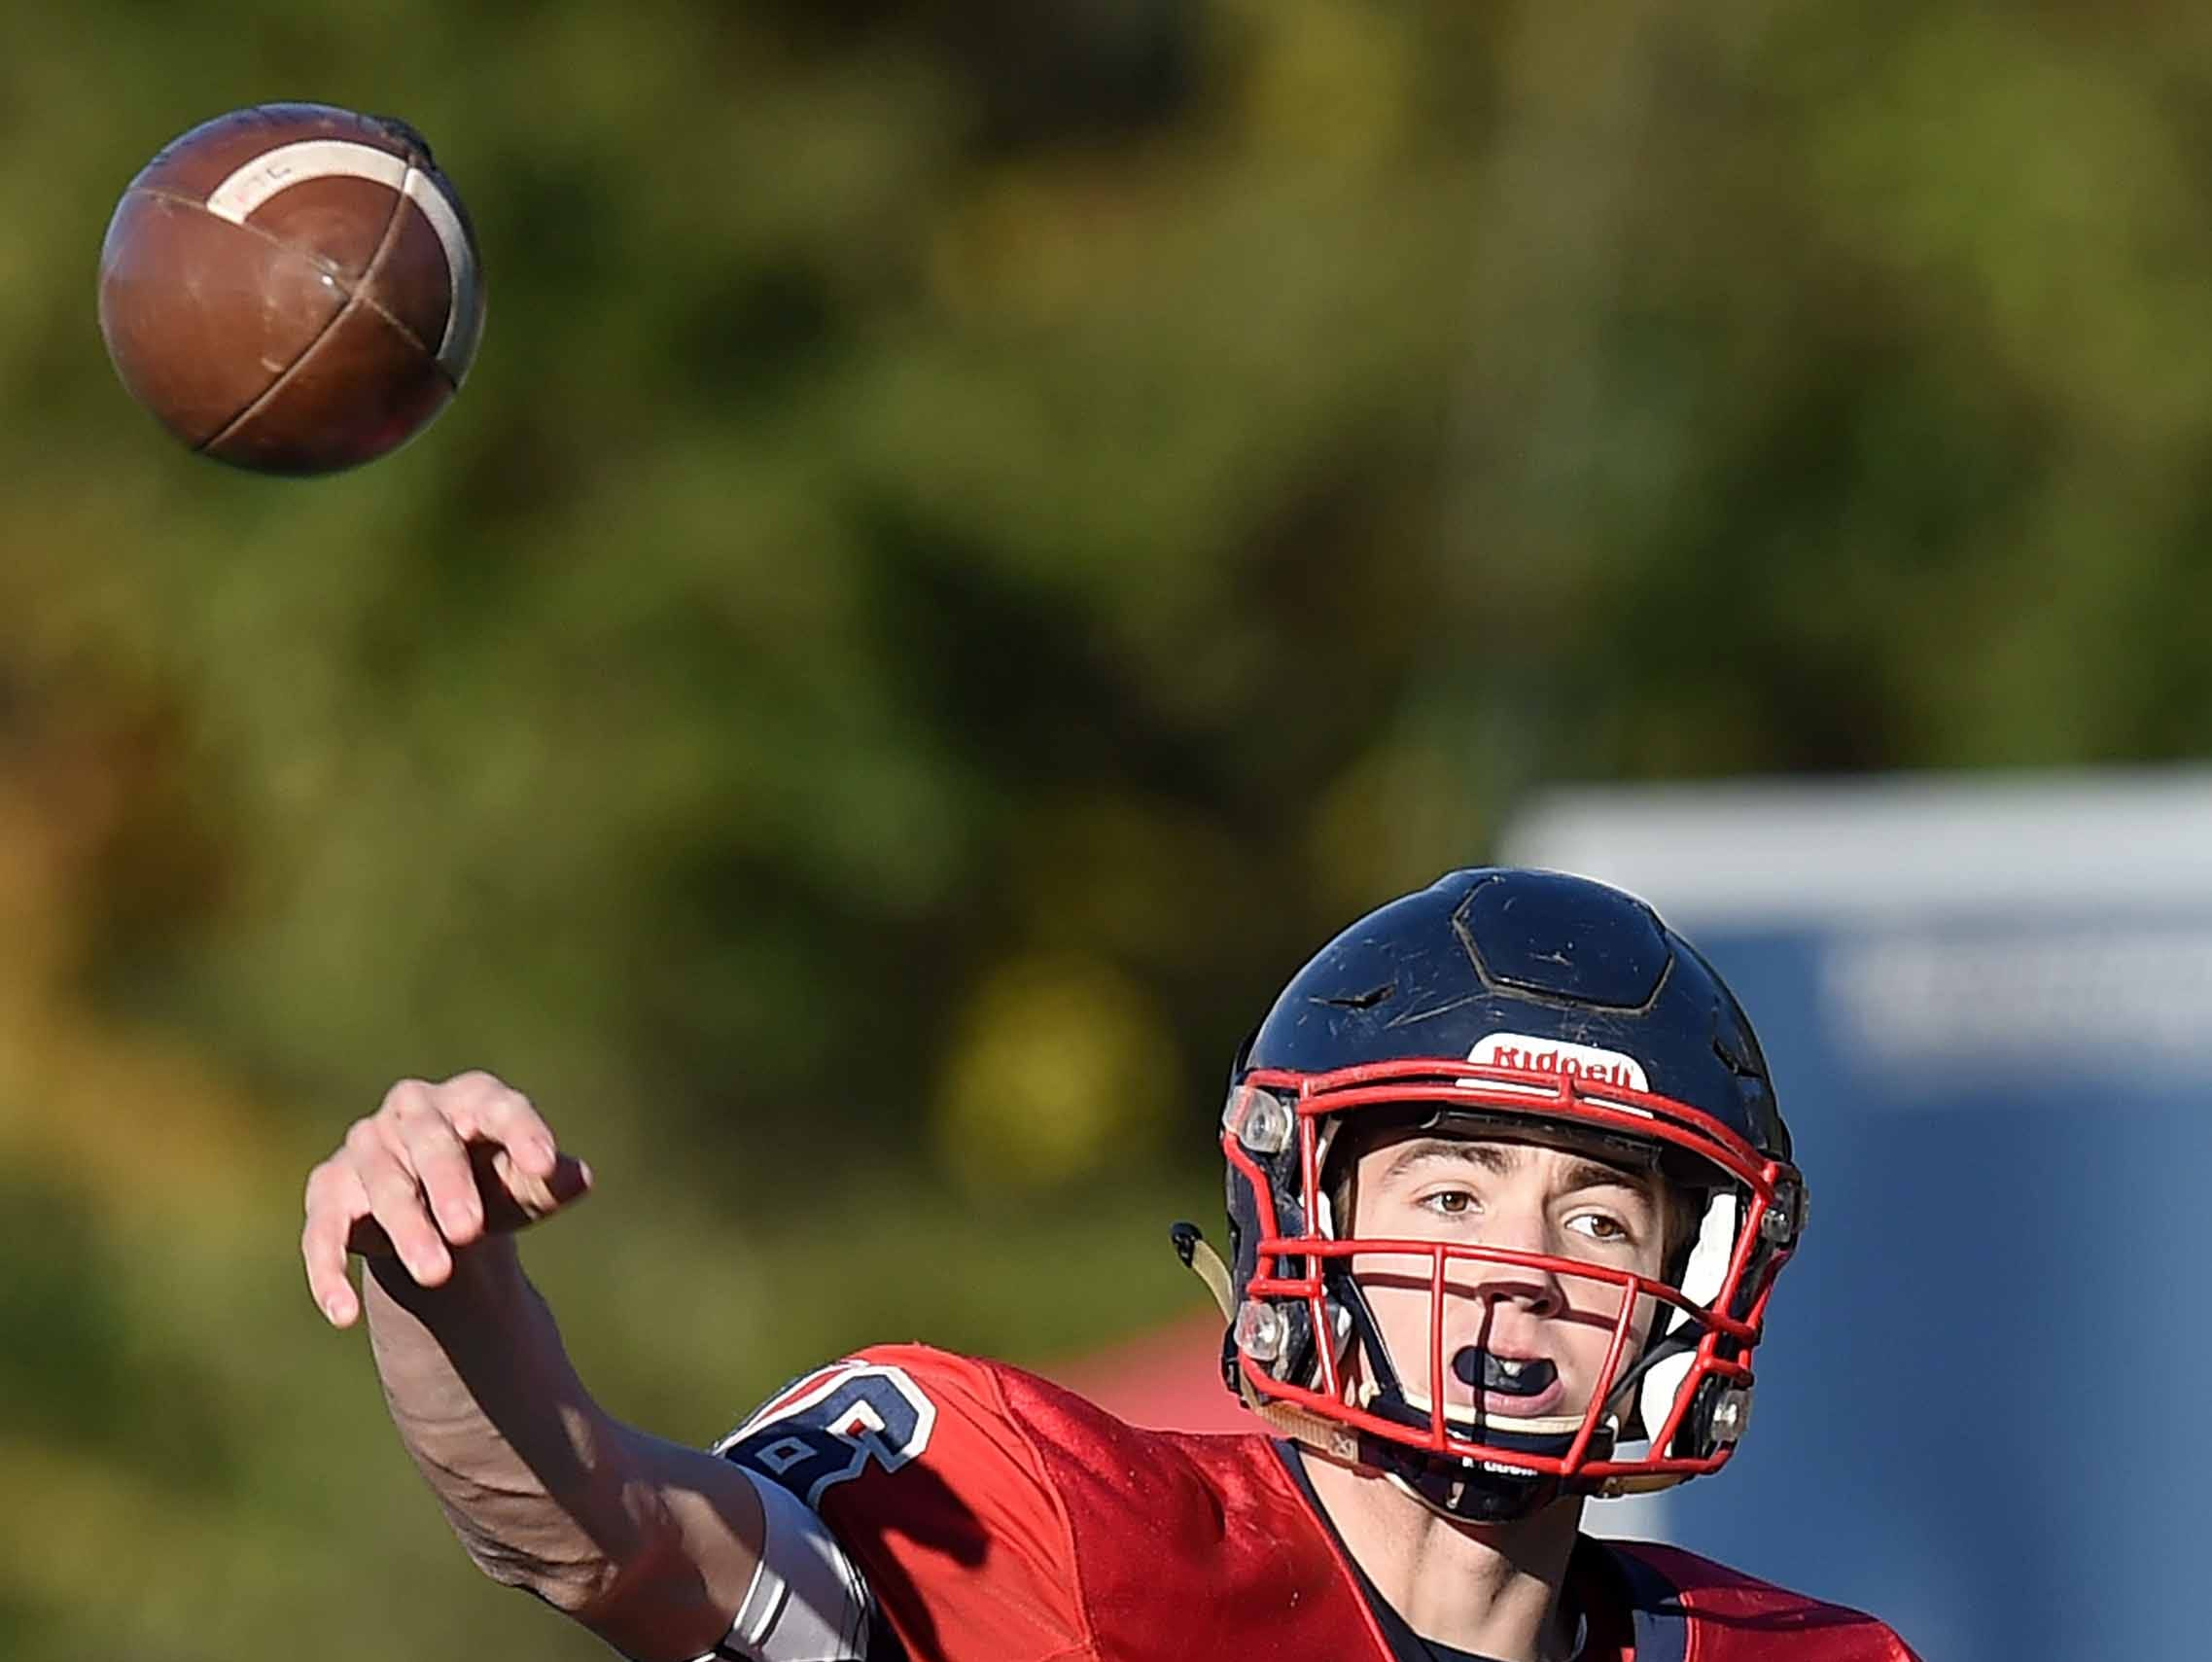 Lamar School's Joseph Hutchinson (16) throws against Simpson Academy on Thursday, November 15, 2018, in the MAIS Class AAAA-D2 Football Championship at Jackson Academy in Jackson, Miss.